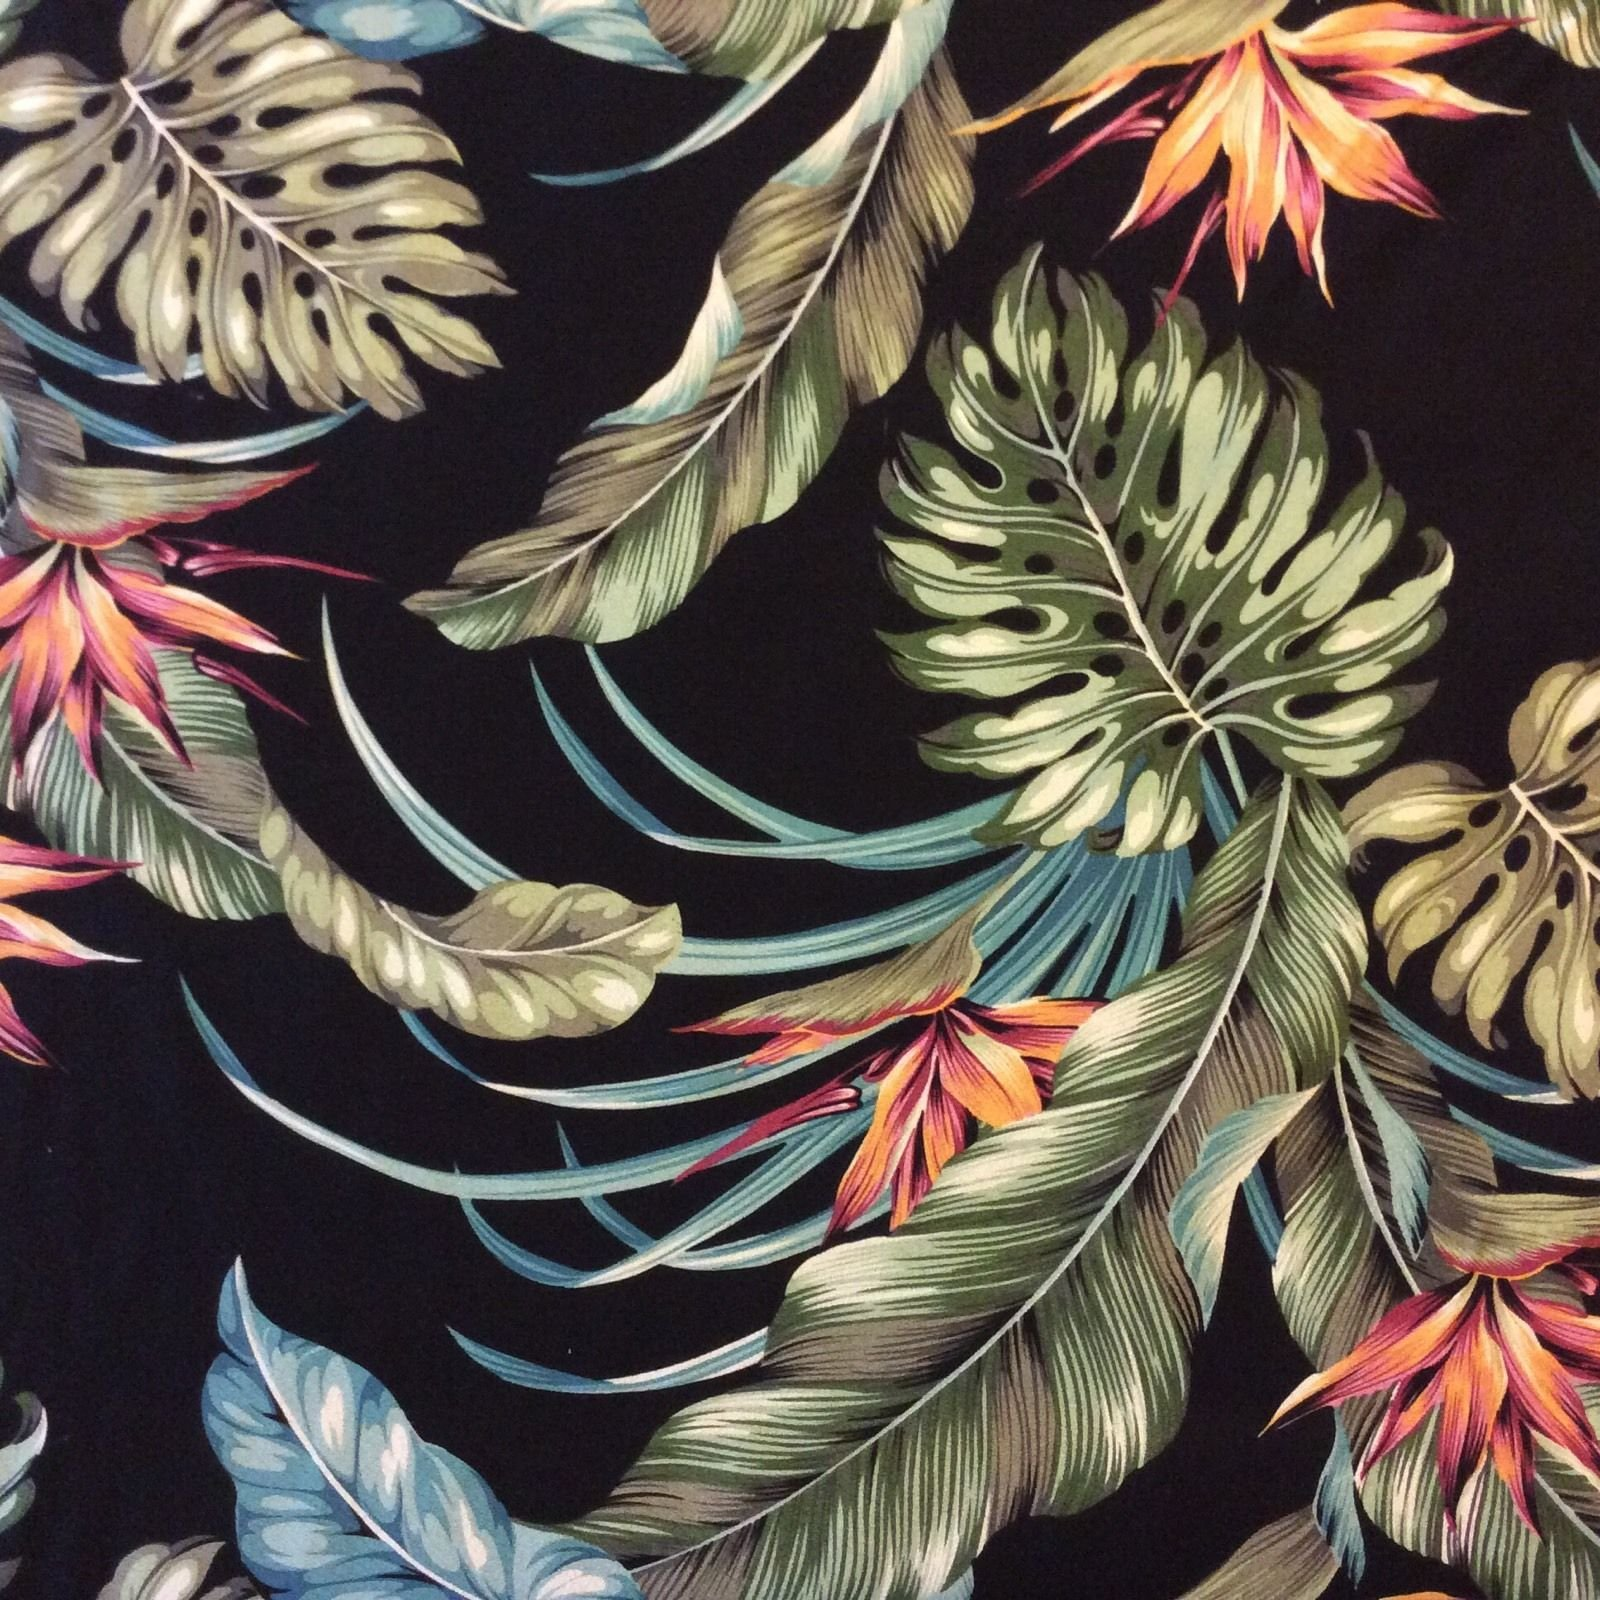 Retro Hawaii Exotic Tropical Flowers Black Palm Floral 100% Cotton Dobby Home Decor Fabric HTP022